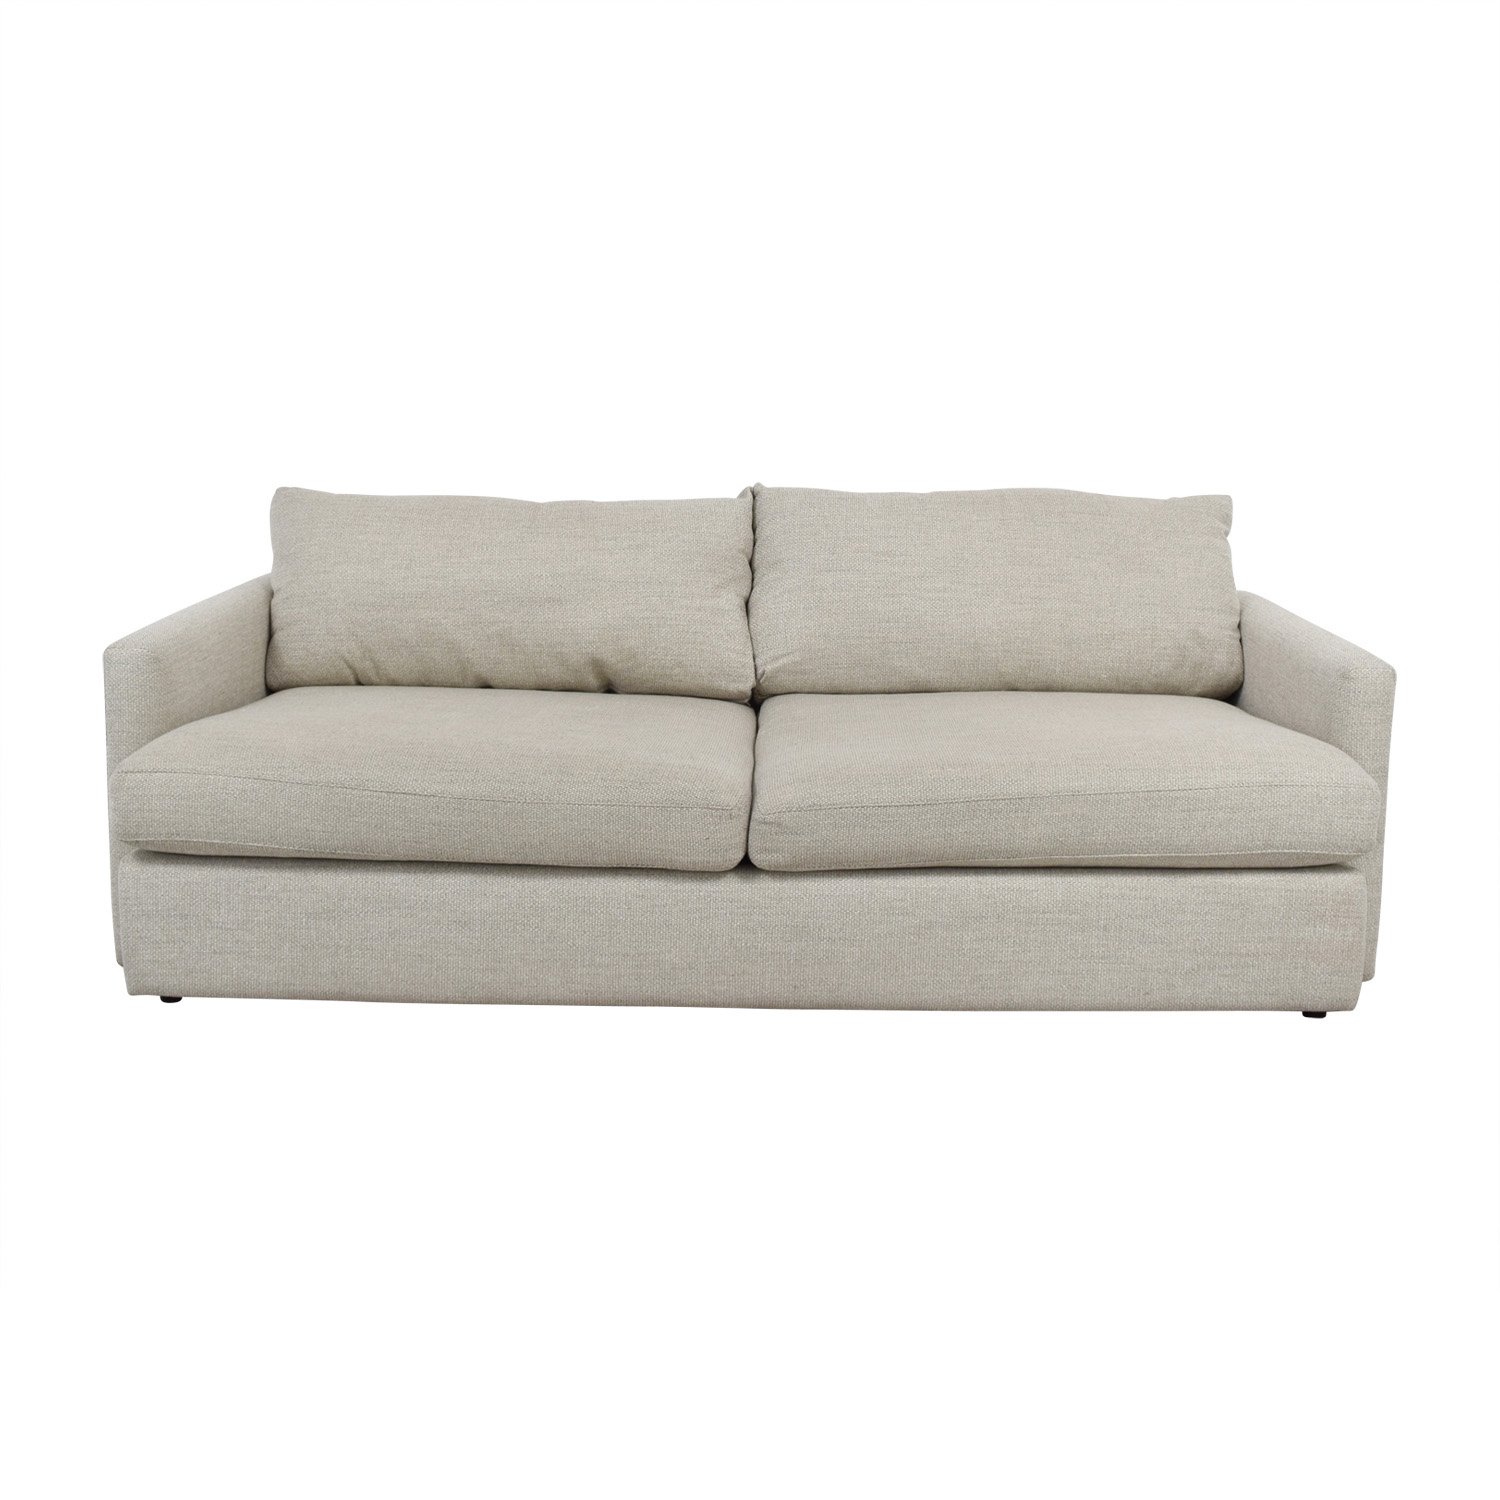 crate and barrel sofa cushion replacement arhaus dune 49 off lounge ii cement